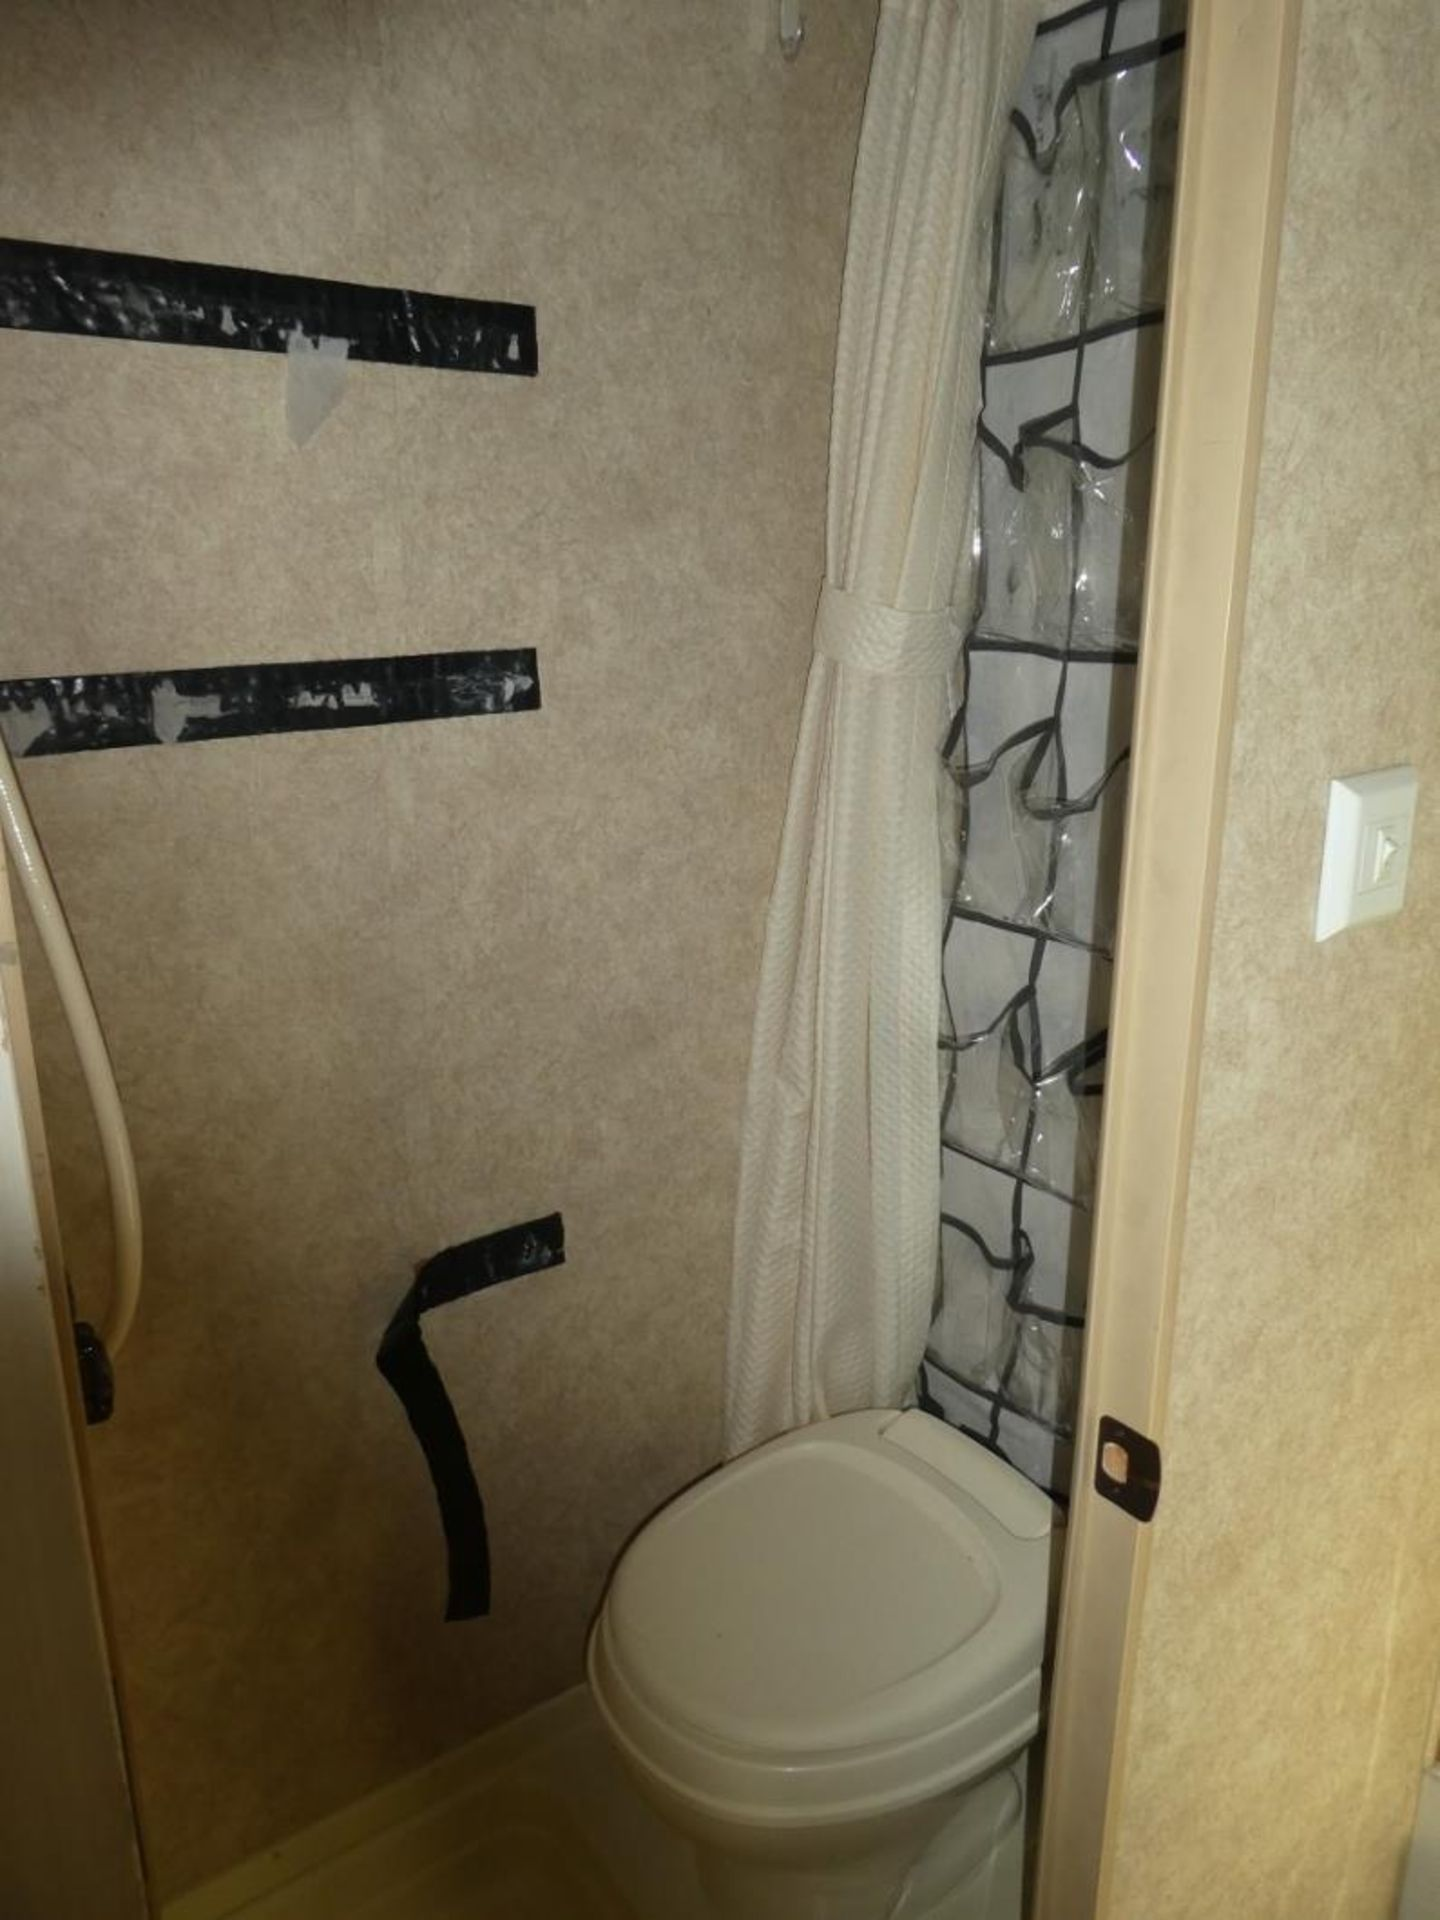 10/2008 FOREST RIVER R-POD S/A HOLIDAY TRAILER MODEL RP171 S/N 4X4TRP7151L004142 W/A/C, BATHROOM, - Image 6 of 12